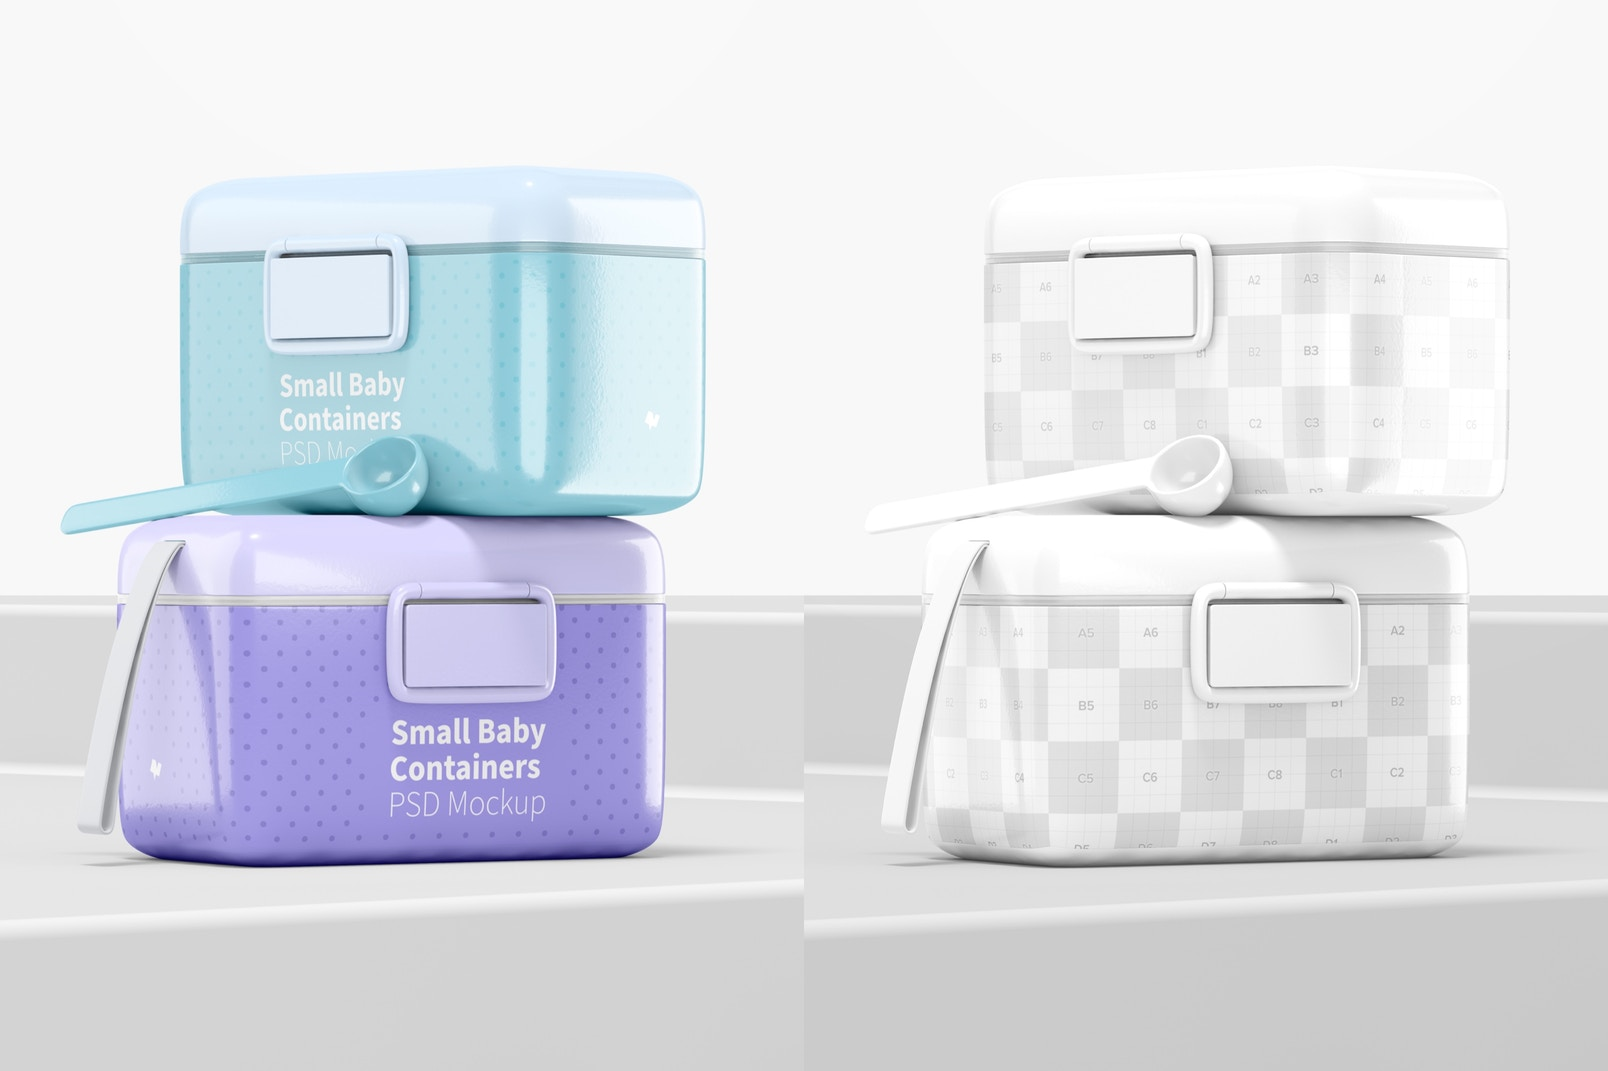 Small Baby Milk Powder Container Mockup, Perspective